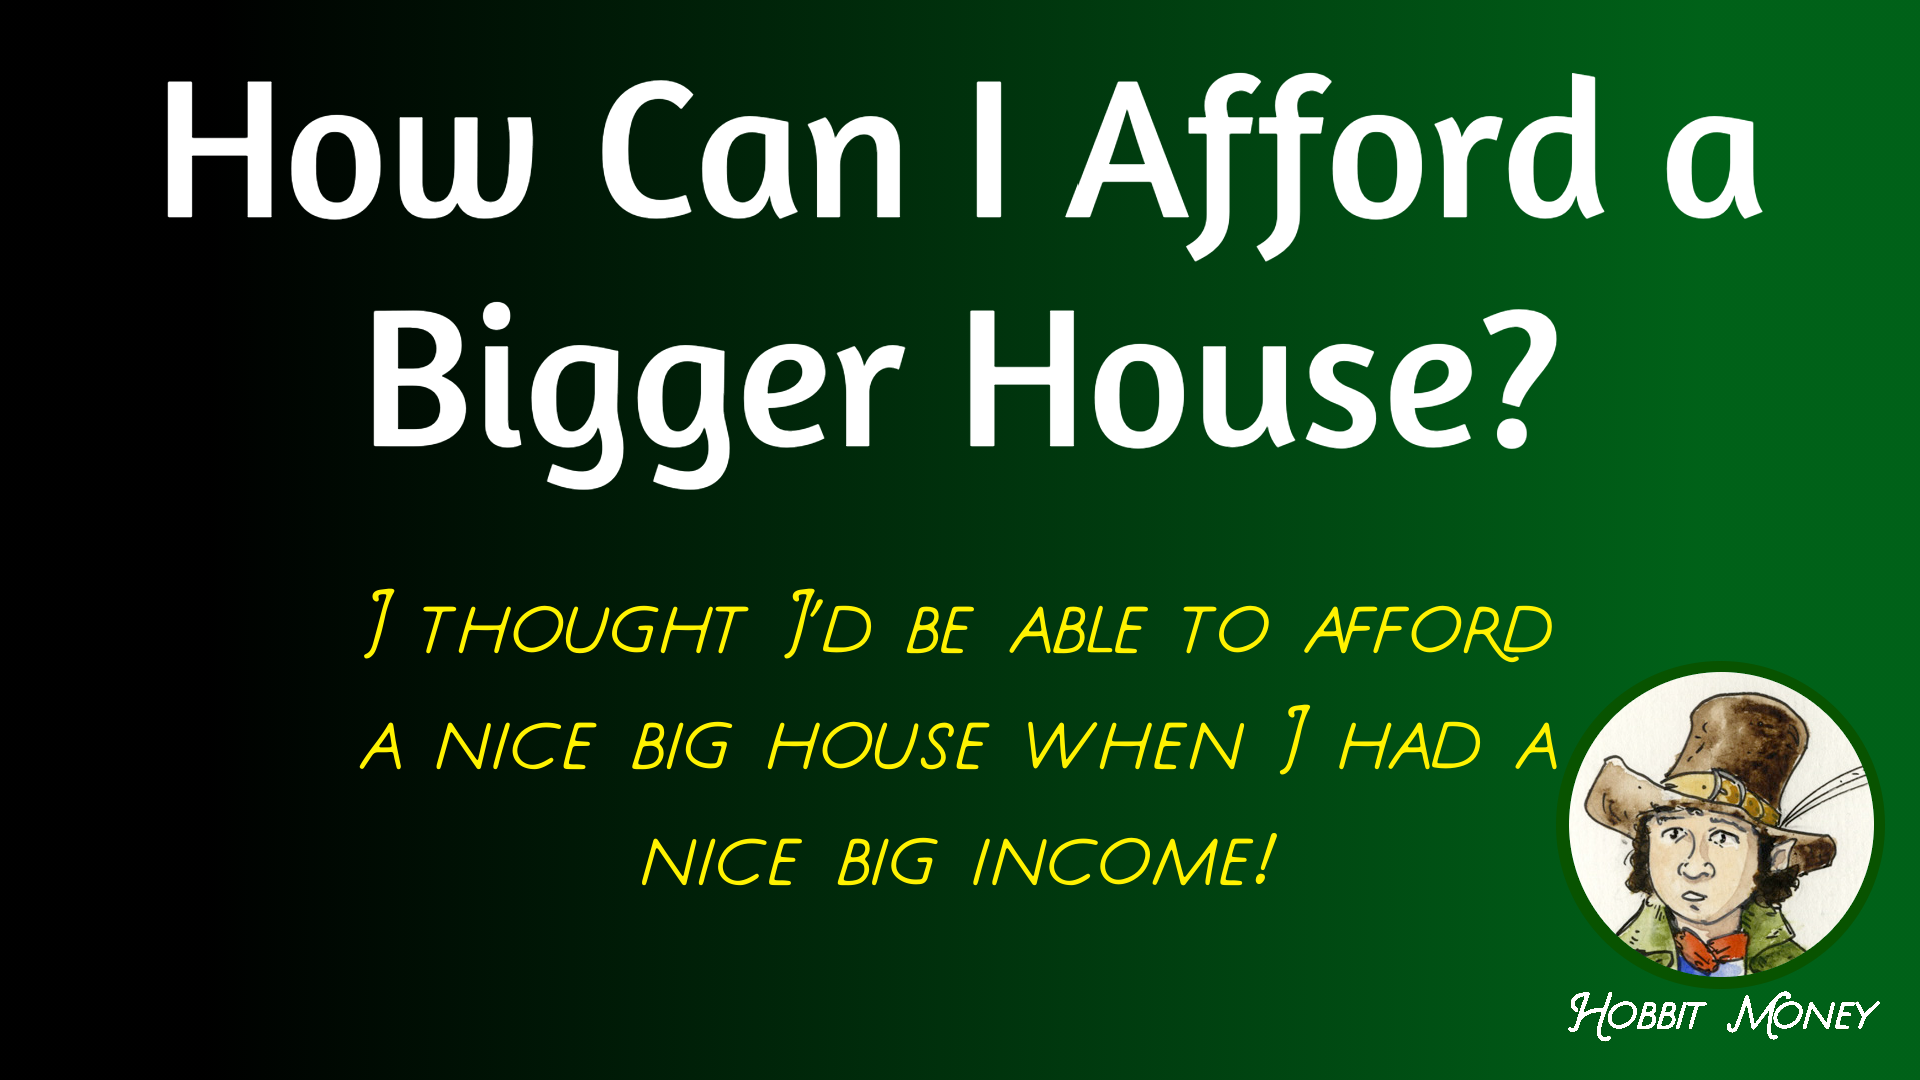 How can i afford a bigger house: I thought I'd be able to afford a nice big house when I had a nice big income - Hobbit Money.